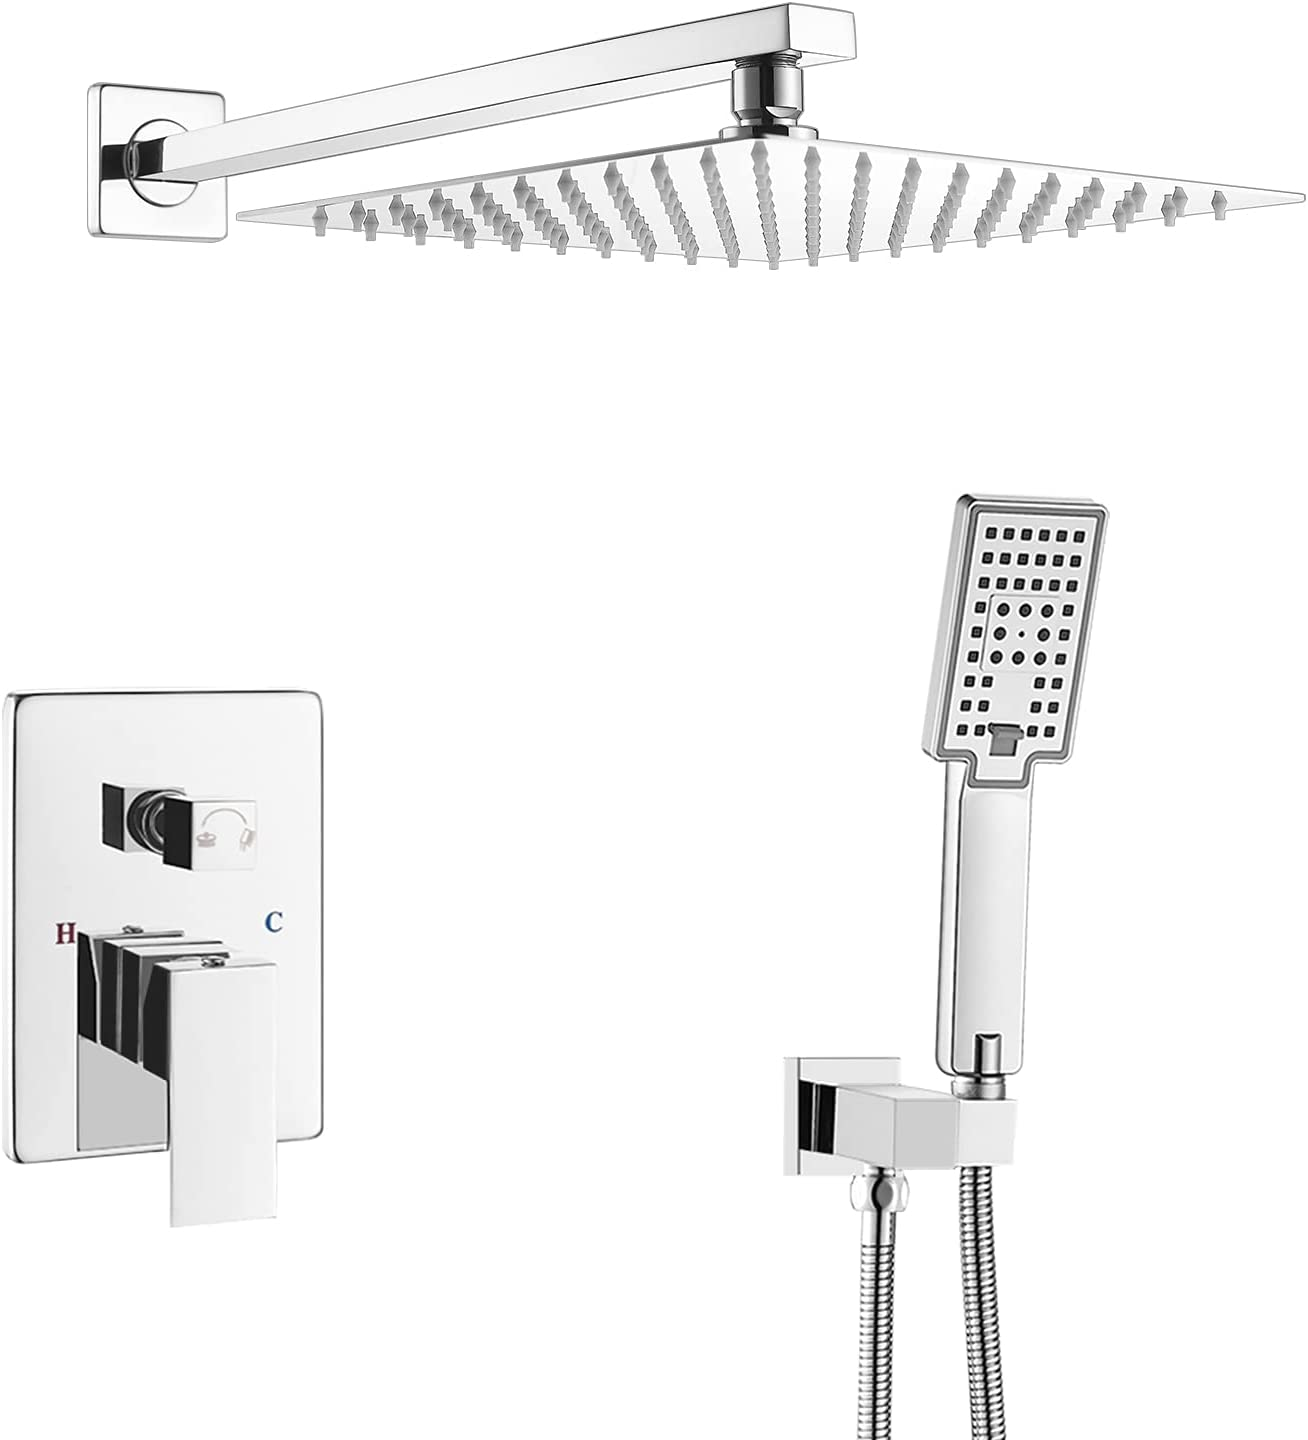 ROVOGO Bathroom Rain Mixer Shower Combo Set, Wall Mount Concealed Rainfall  Shower Head System, Brass Shower Faucet Rough In Valve Body and Trim+20inch  ...